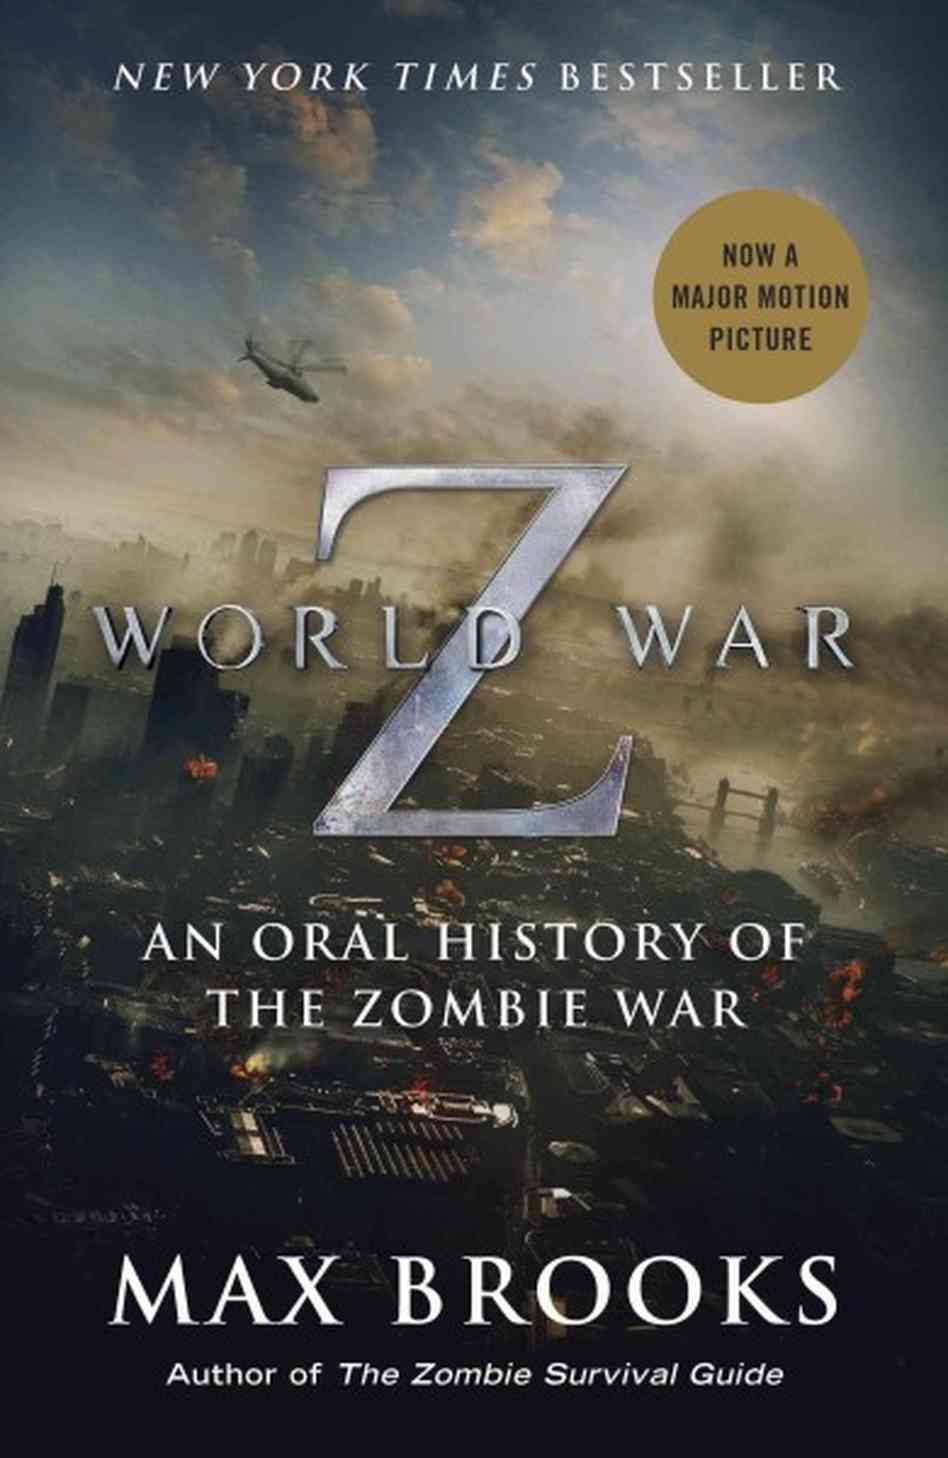 the human fear in the book world war z by max brooks These papers were written primarily by students and provide critical analysis of world war z by max brooks fighting the zombie within: america's role in world war z the only thing we have to fear.